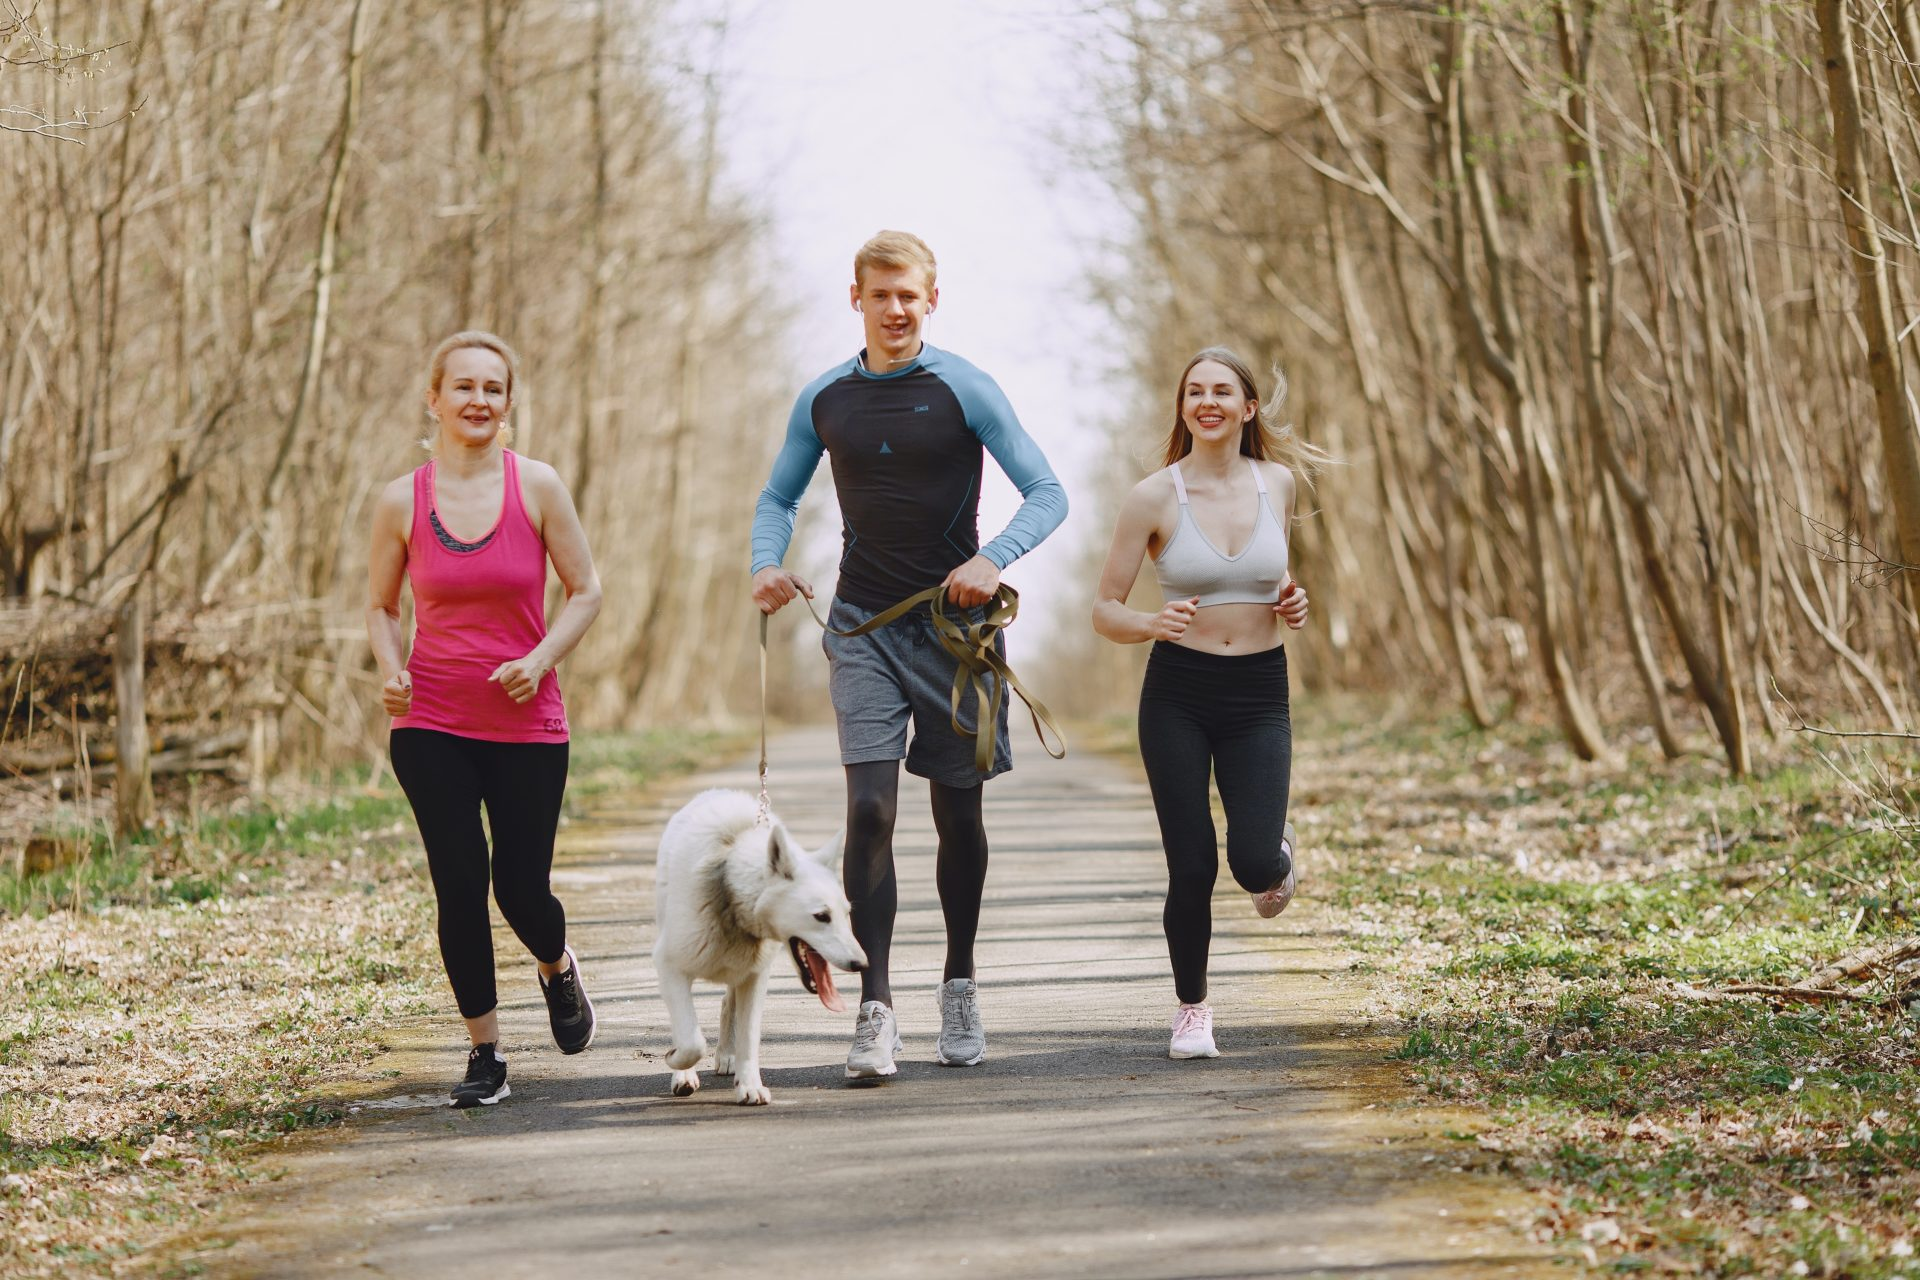 Photo Of Two Women And Man Jogging With Dog On Pavement